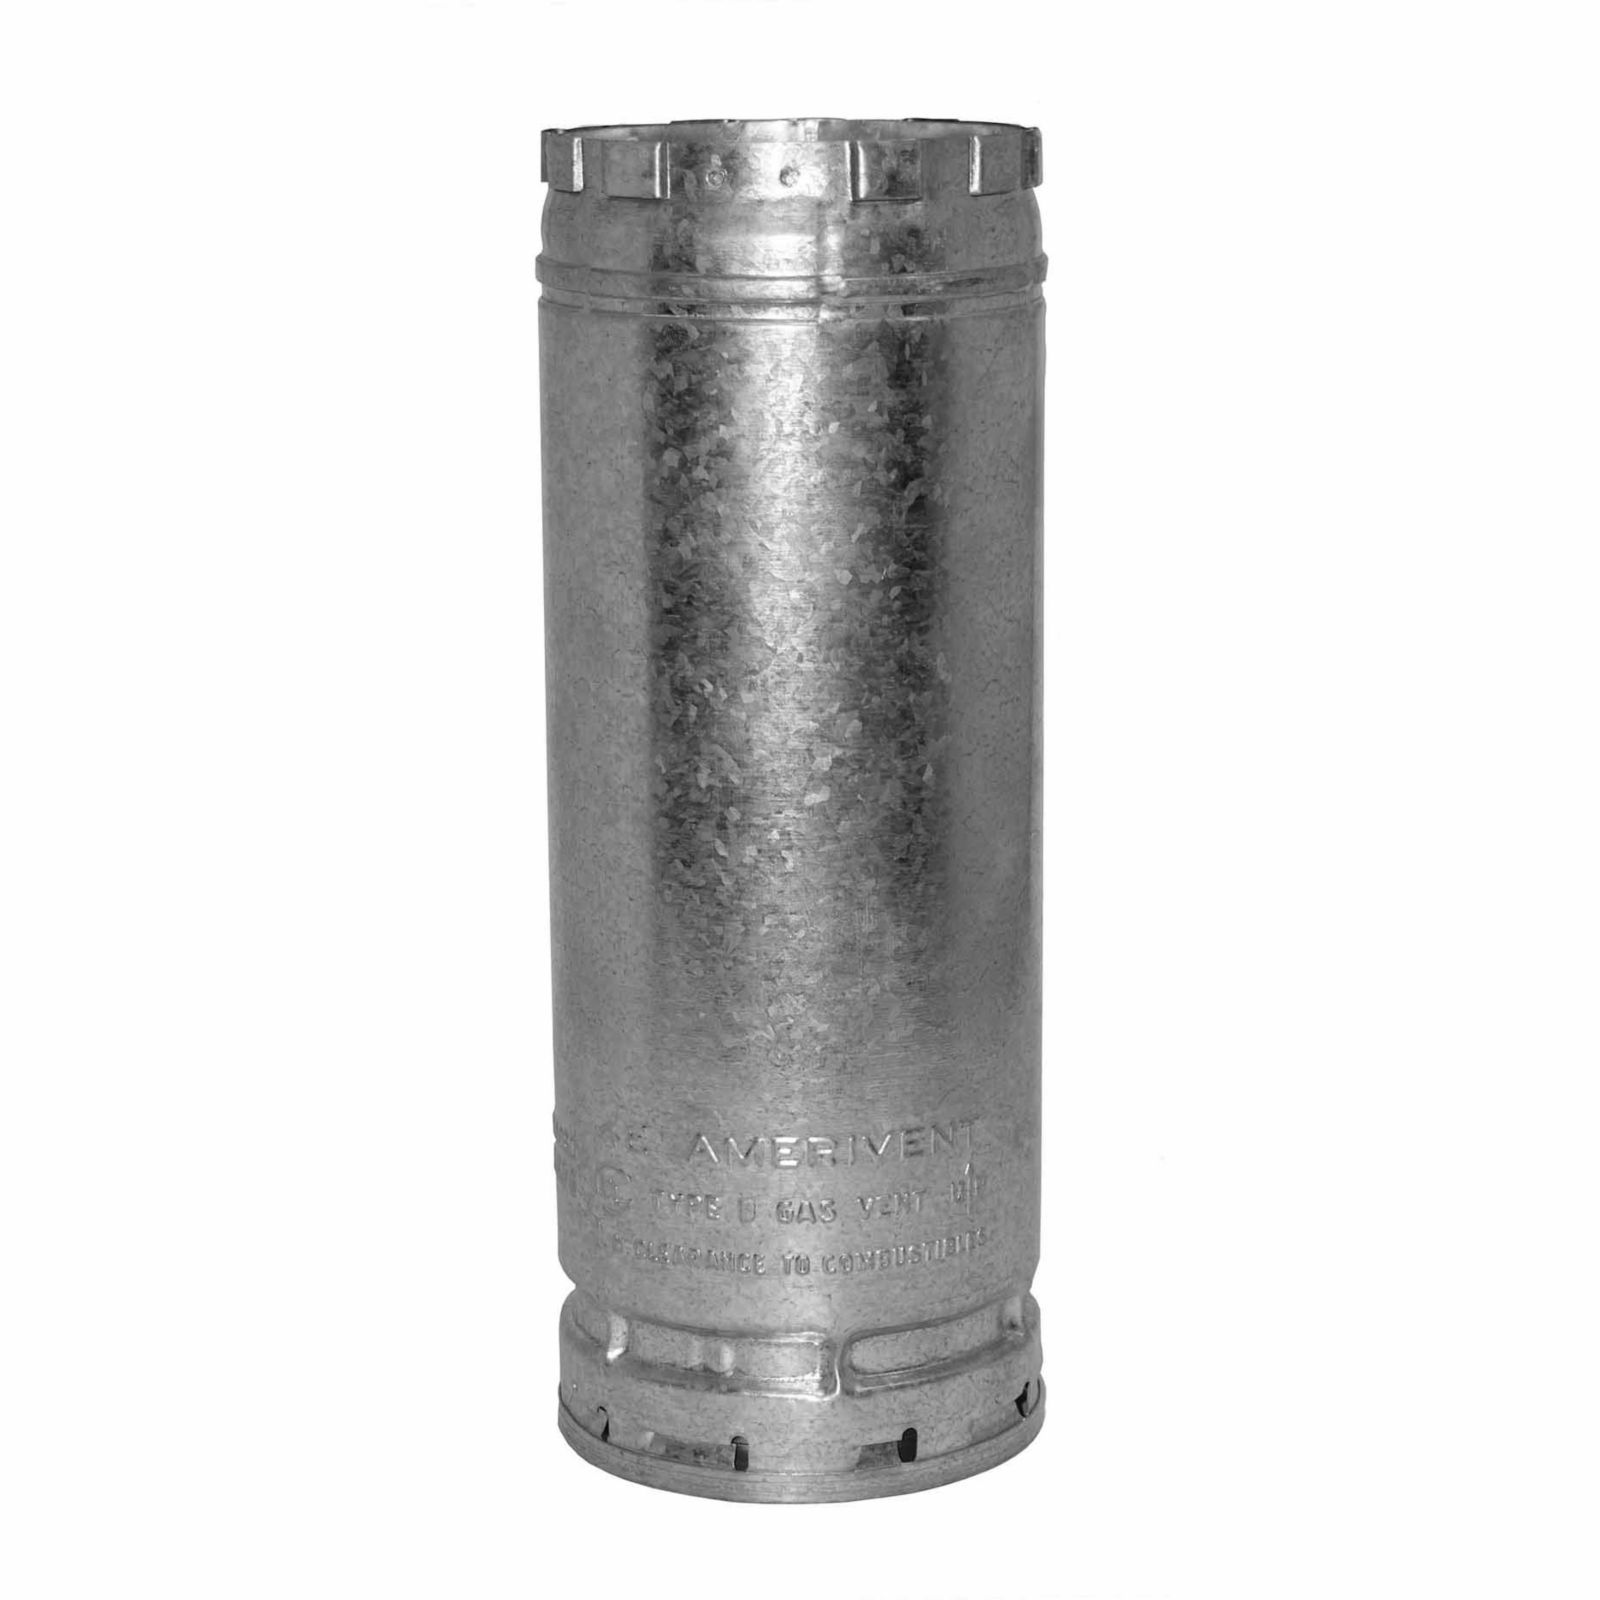 "AmeriVent 3E12 - Pipe Section Type B Gas Vent, 3"" Round X 12"" Length"